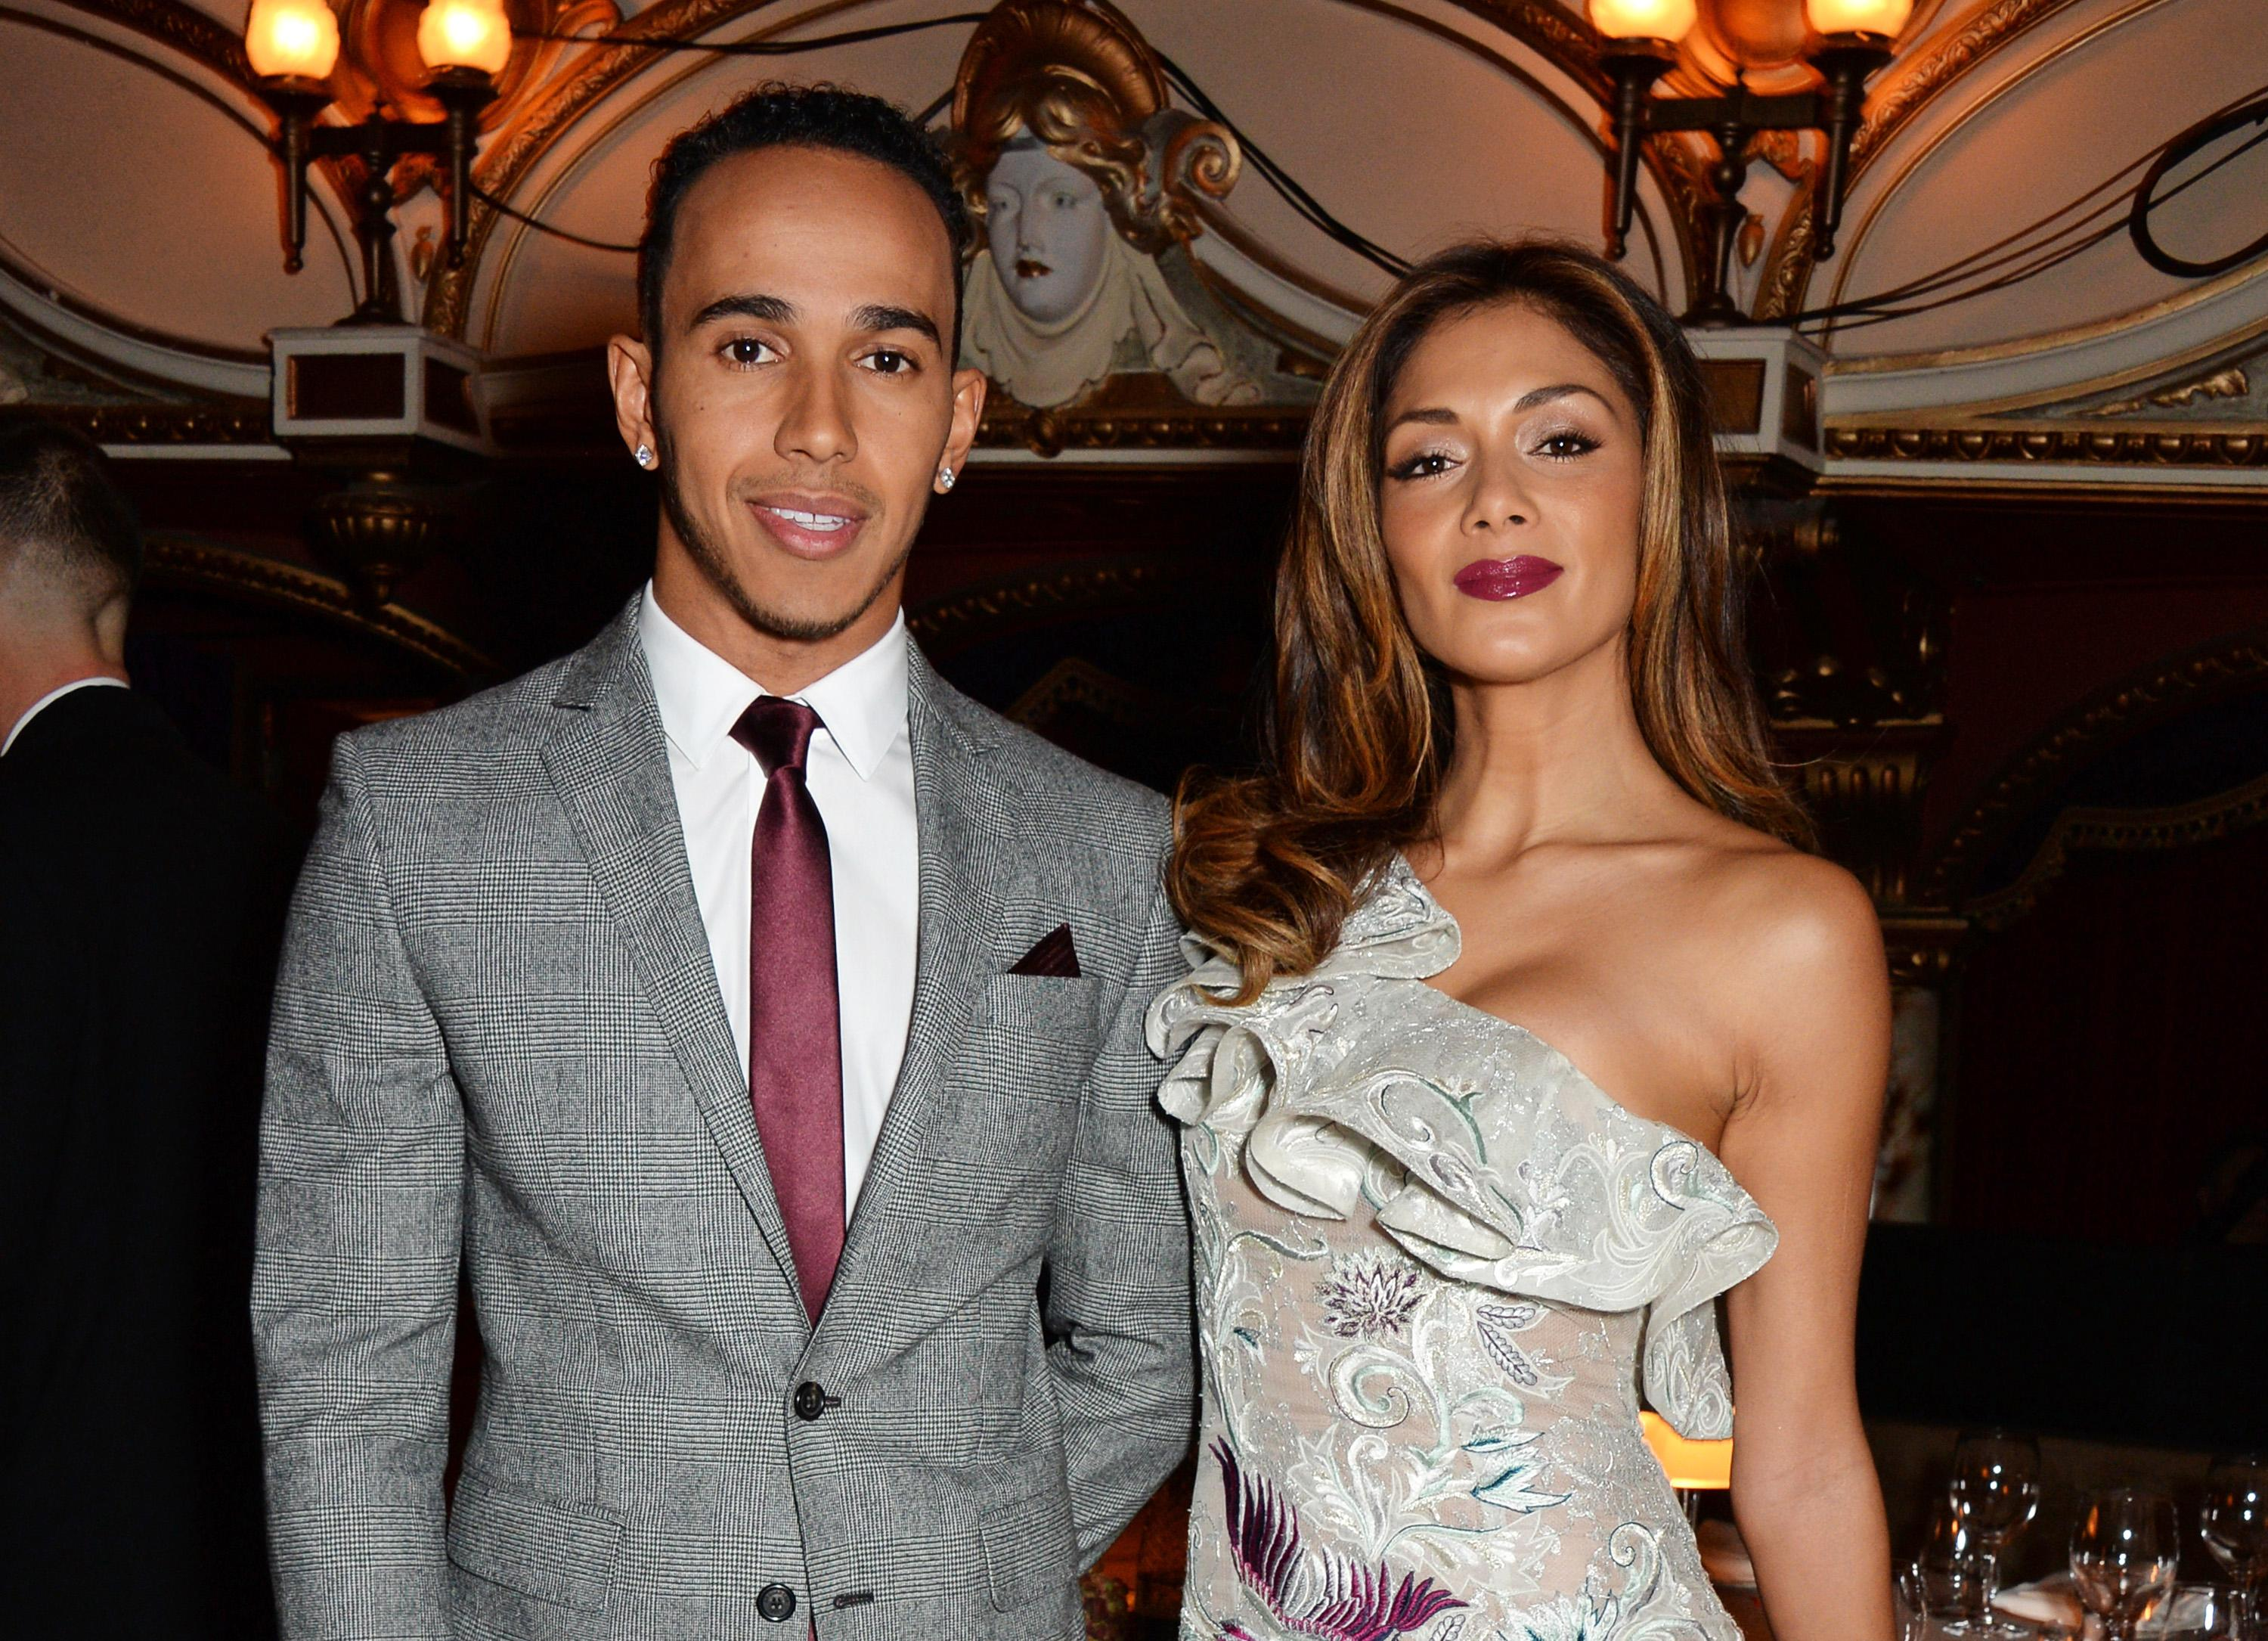 Nicole and Lewis were reported to have clashed over having a family